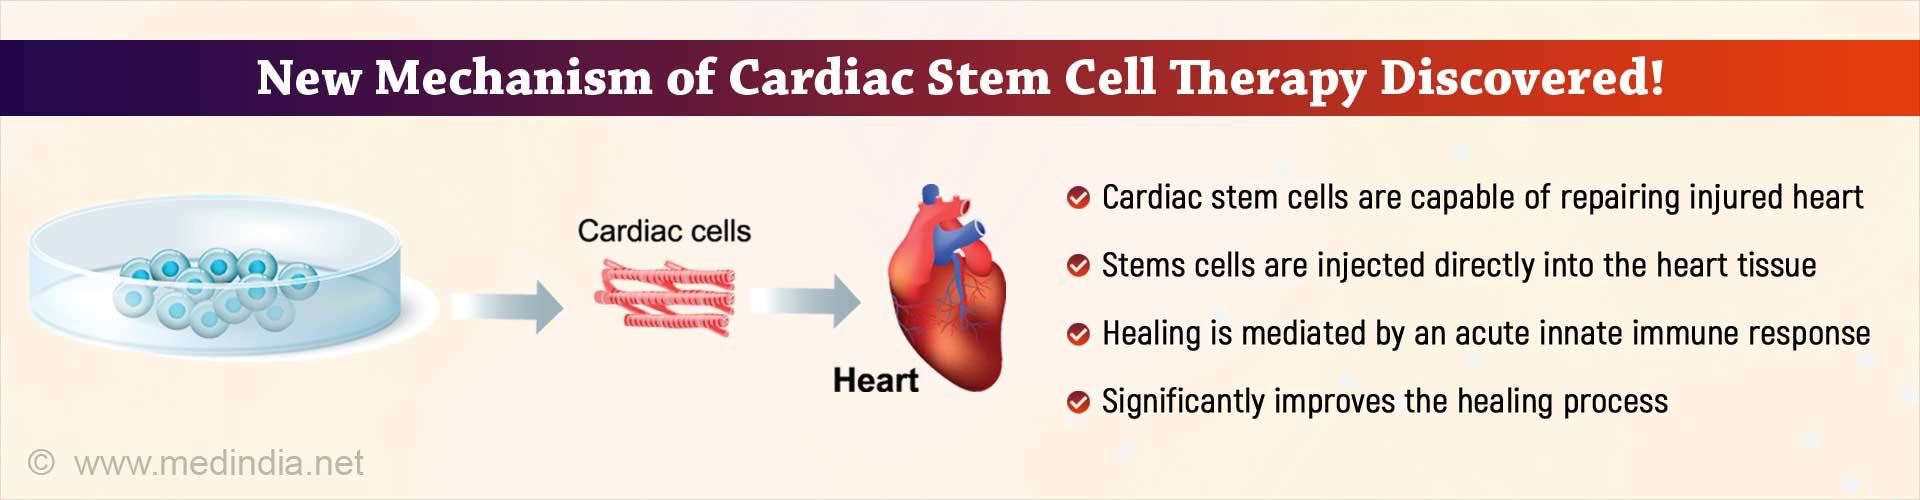 Cardiac Stem Cells can Repair Injured Heart